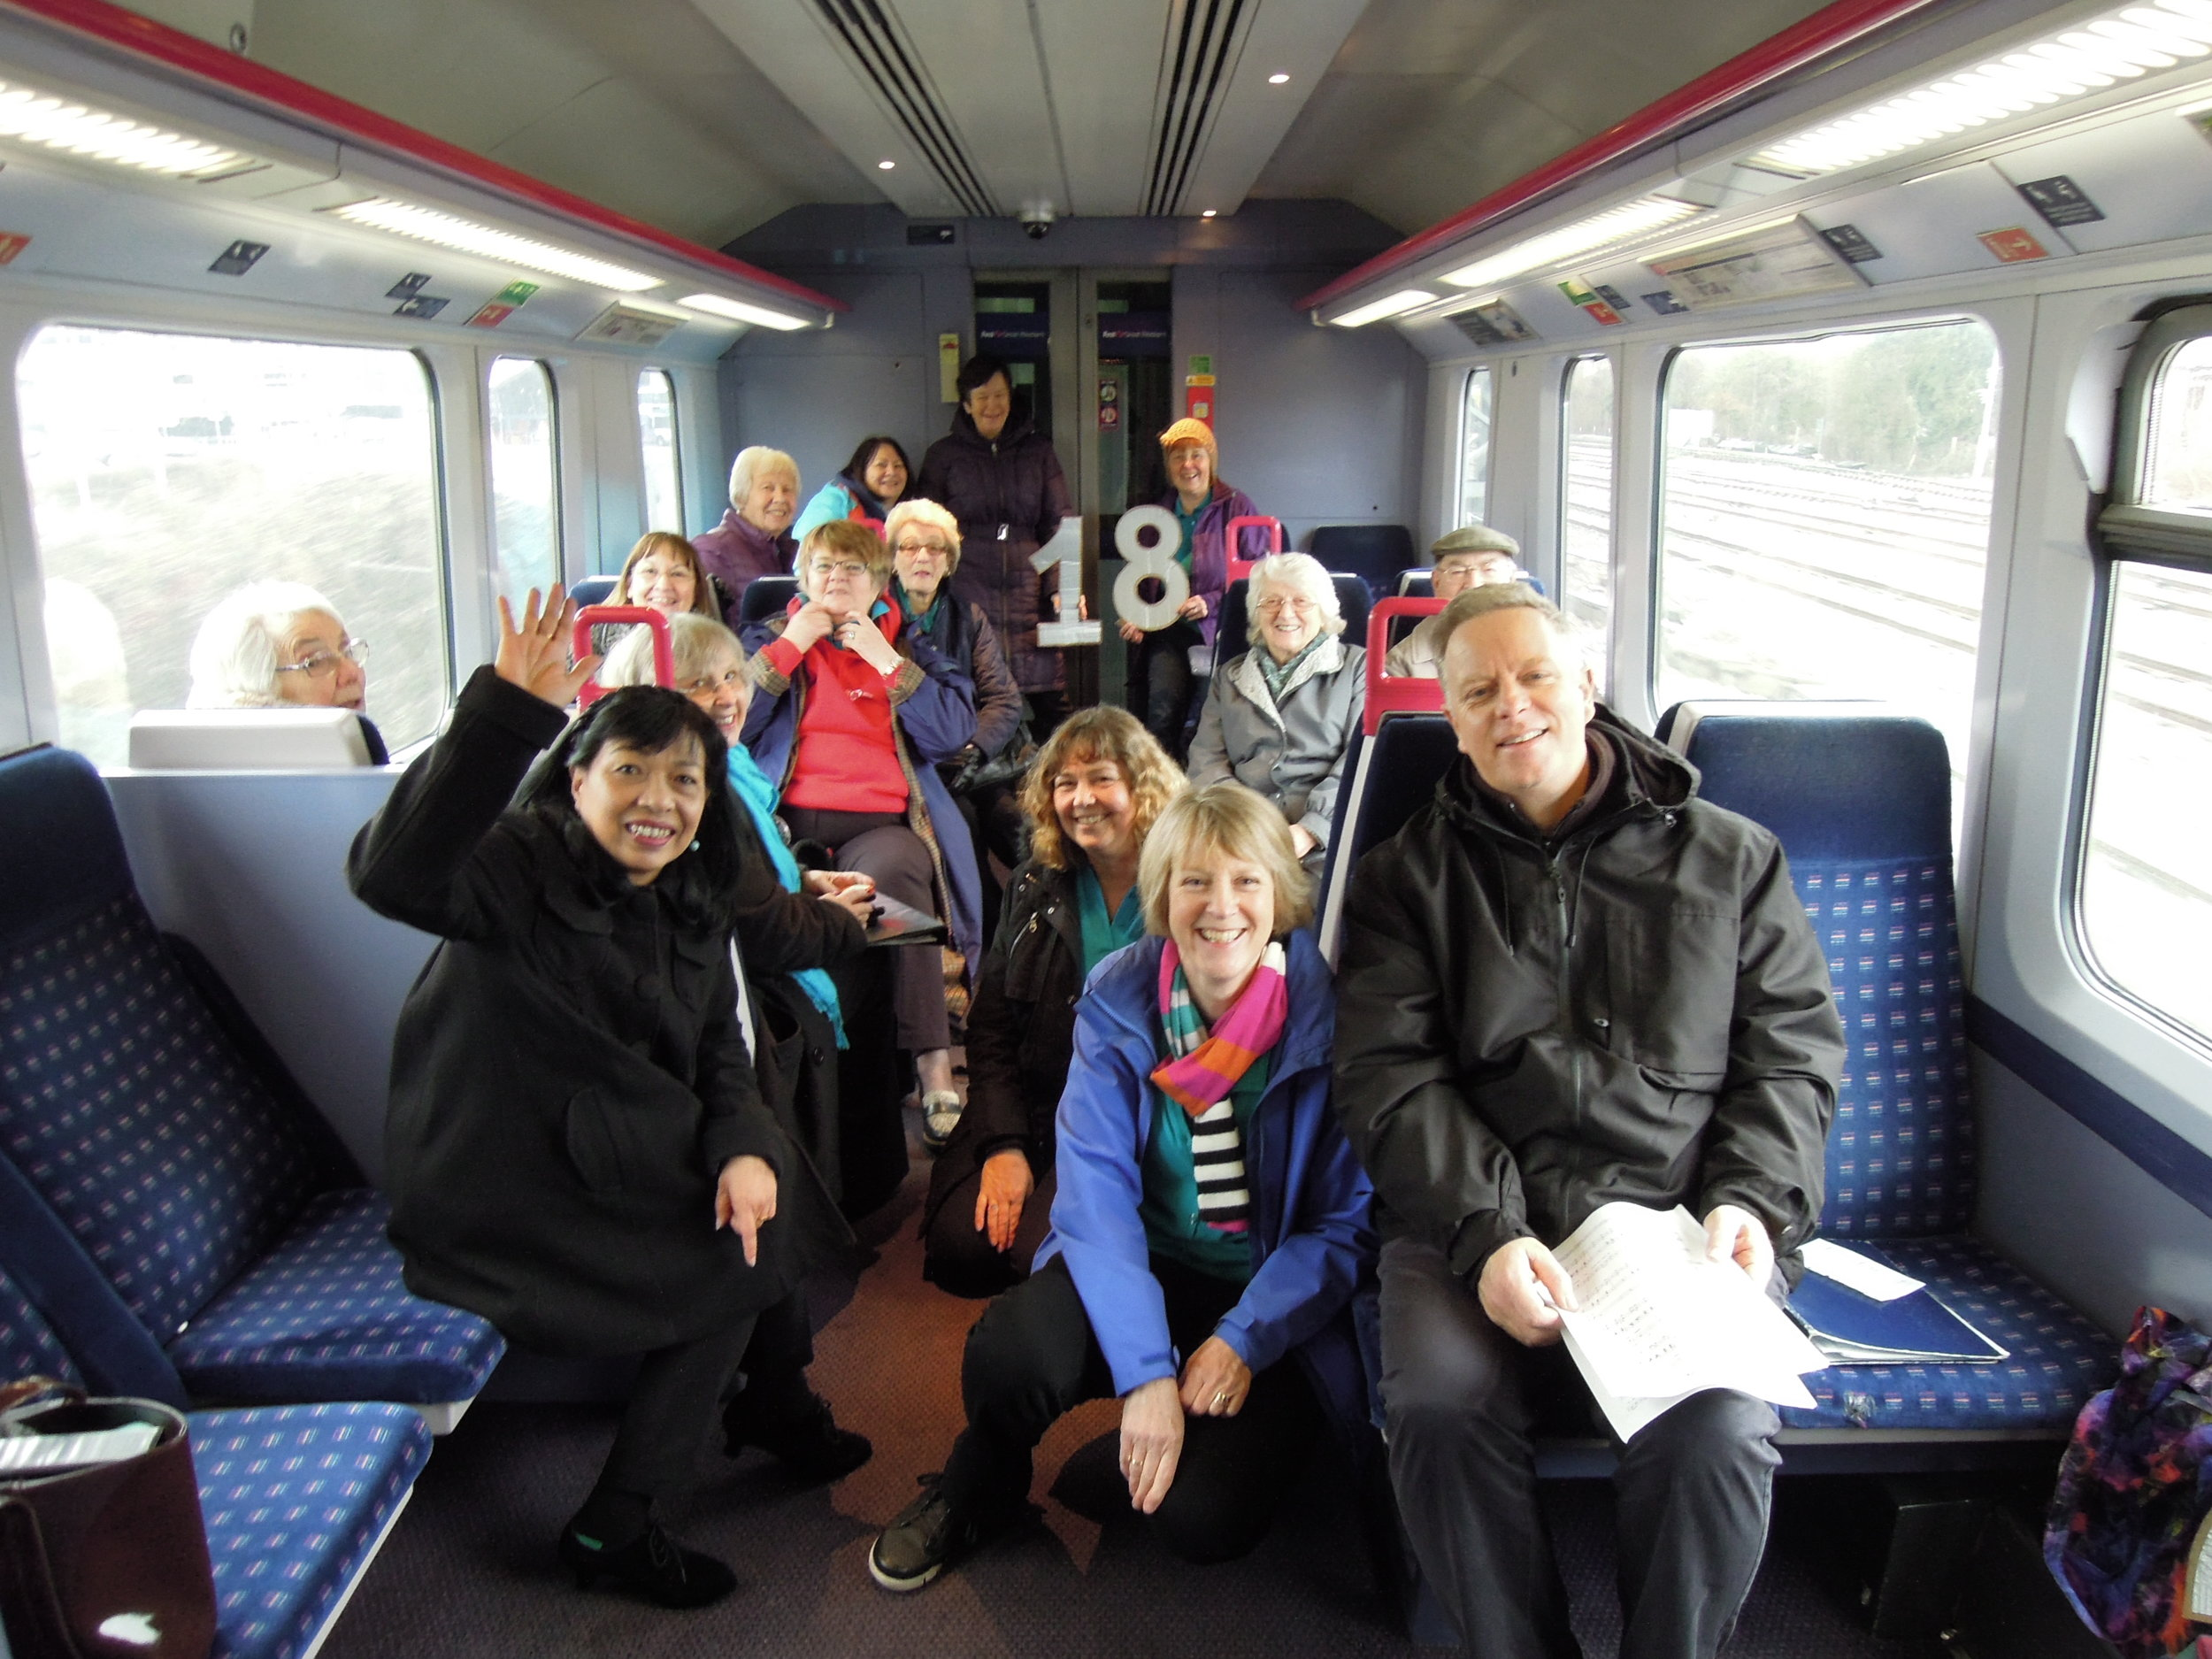 Singing on the train from Bristol Parkway to Temple Meads